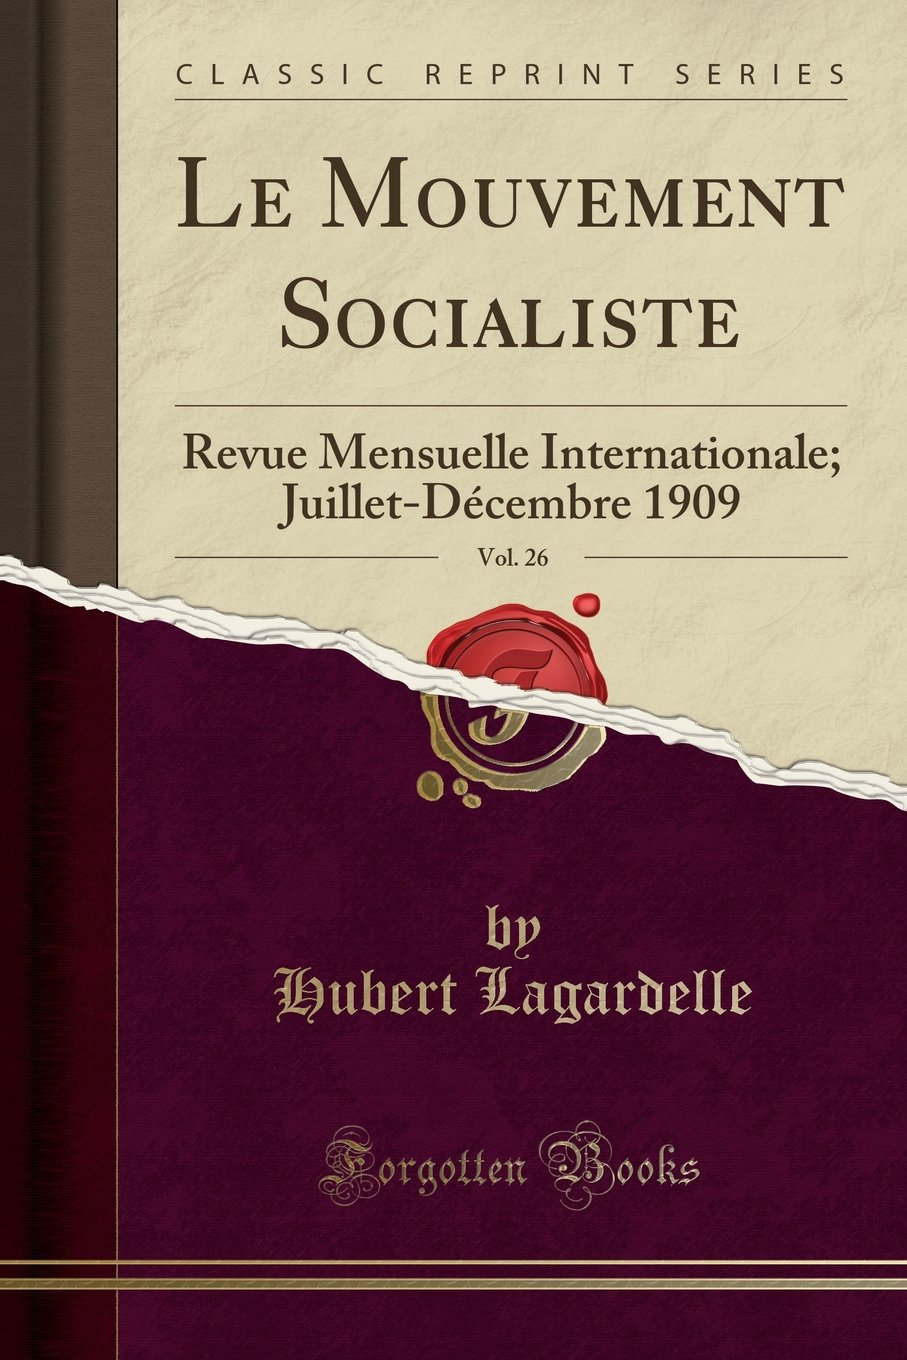 Le Mouvement Socialiste, Vol. 26: Revue Mensuelle Internationale; Juillet-Décembre 1909 (Classic Reprint) (French Edition) PDF